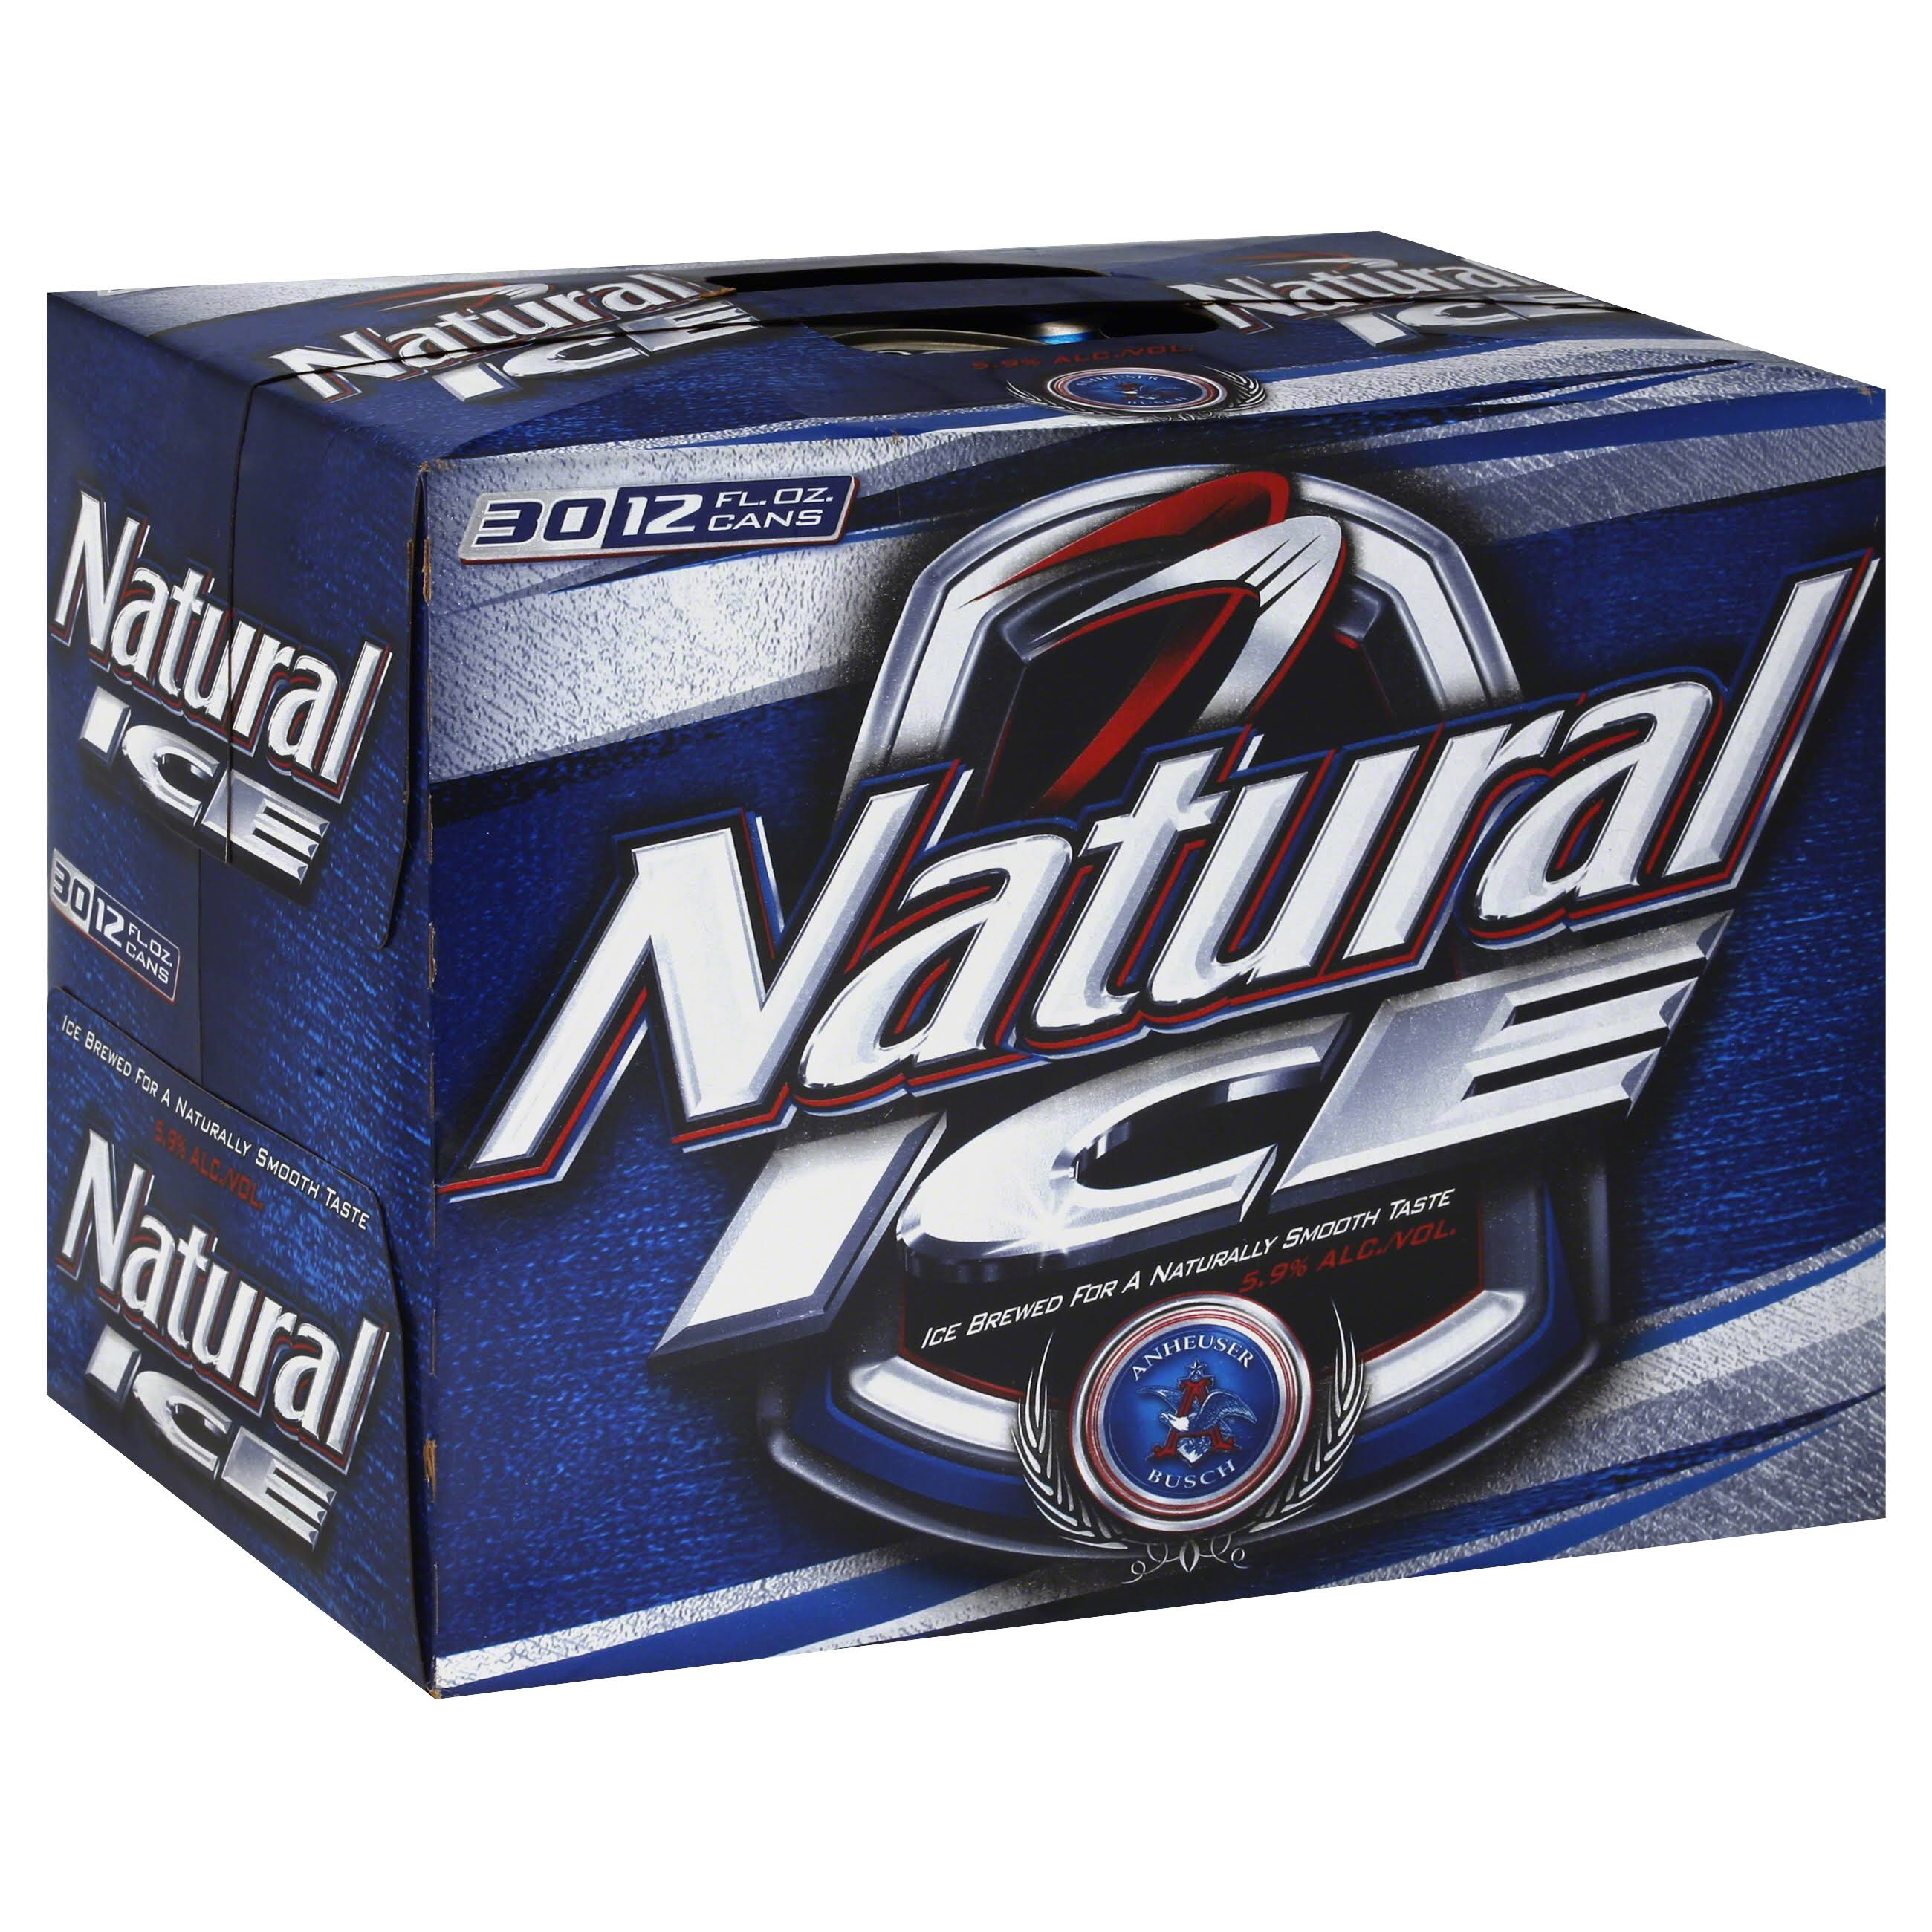 Natural Ice Lager - 30 pack, 12 fl oz cans